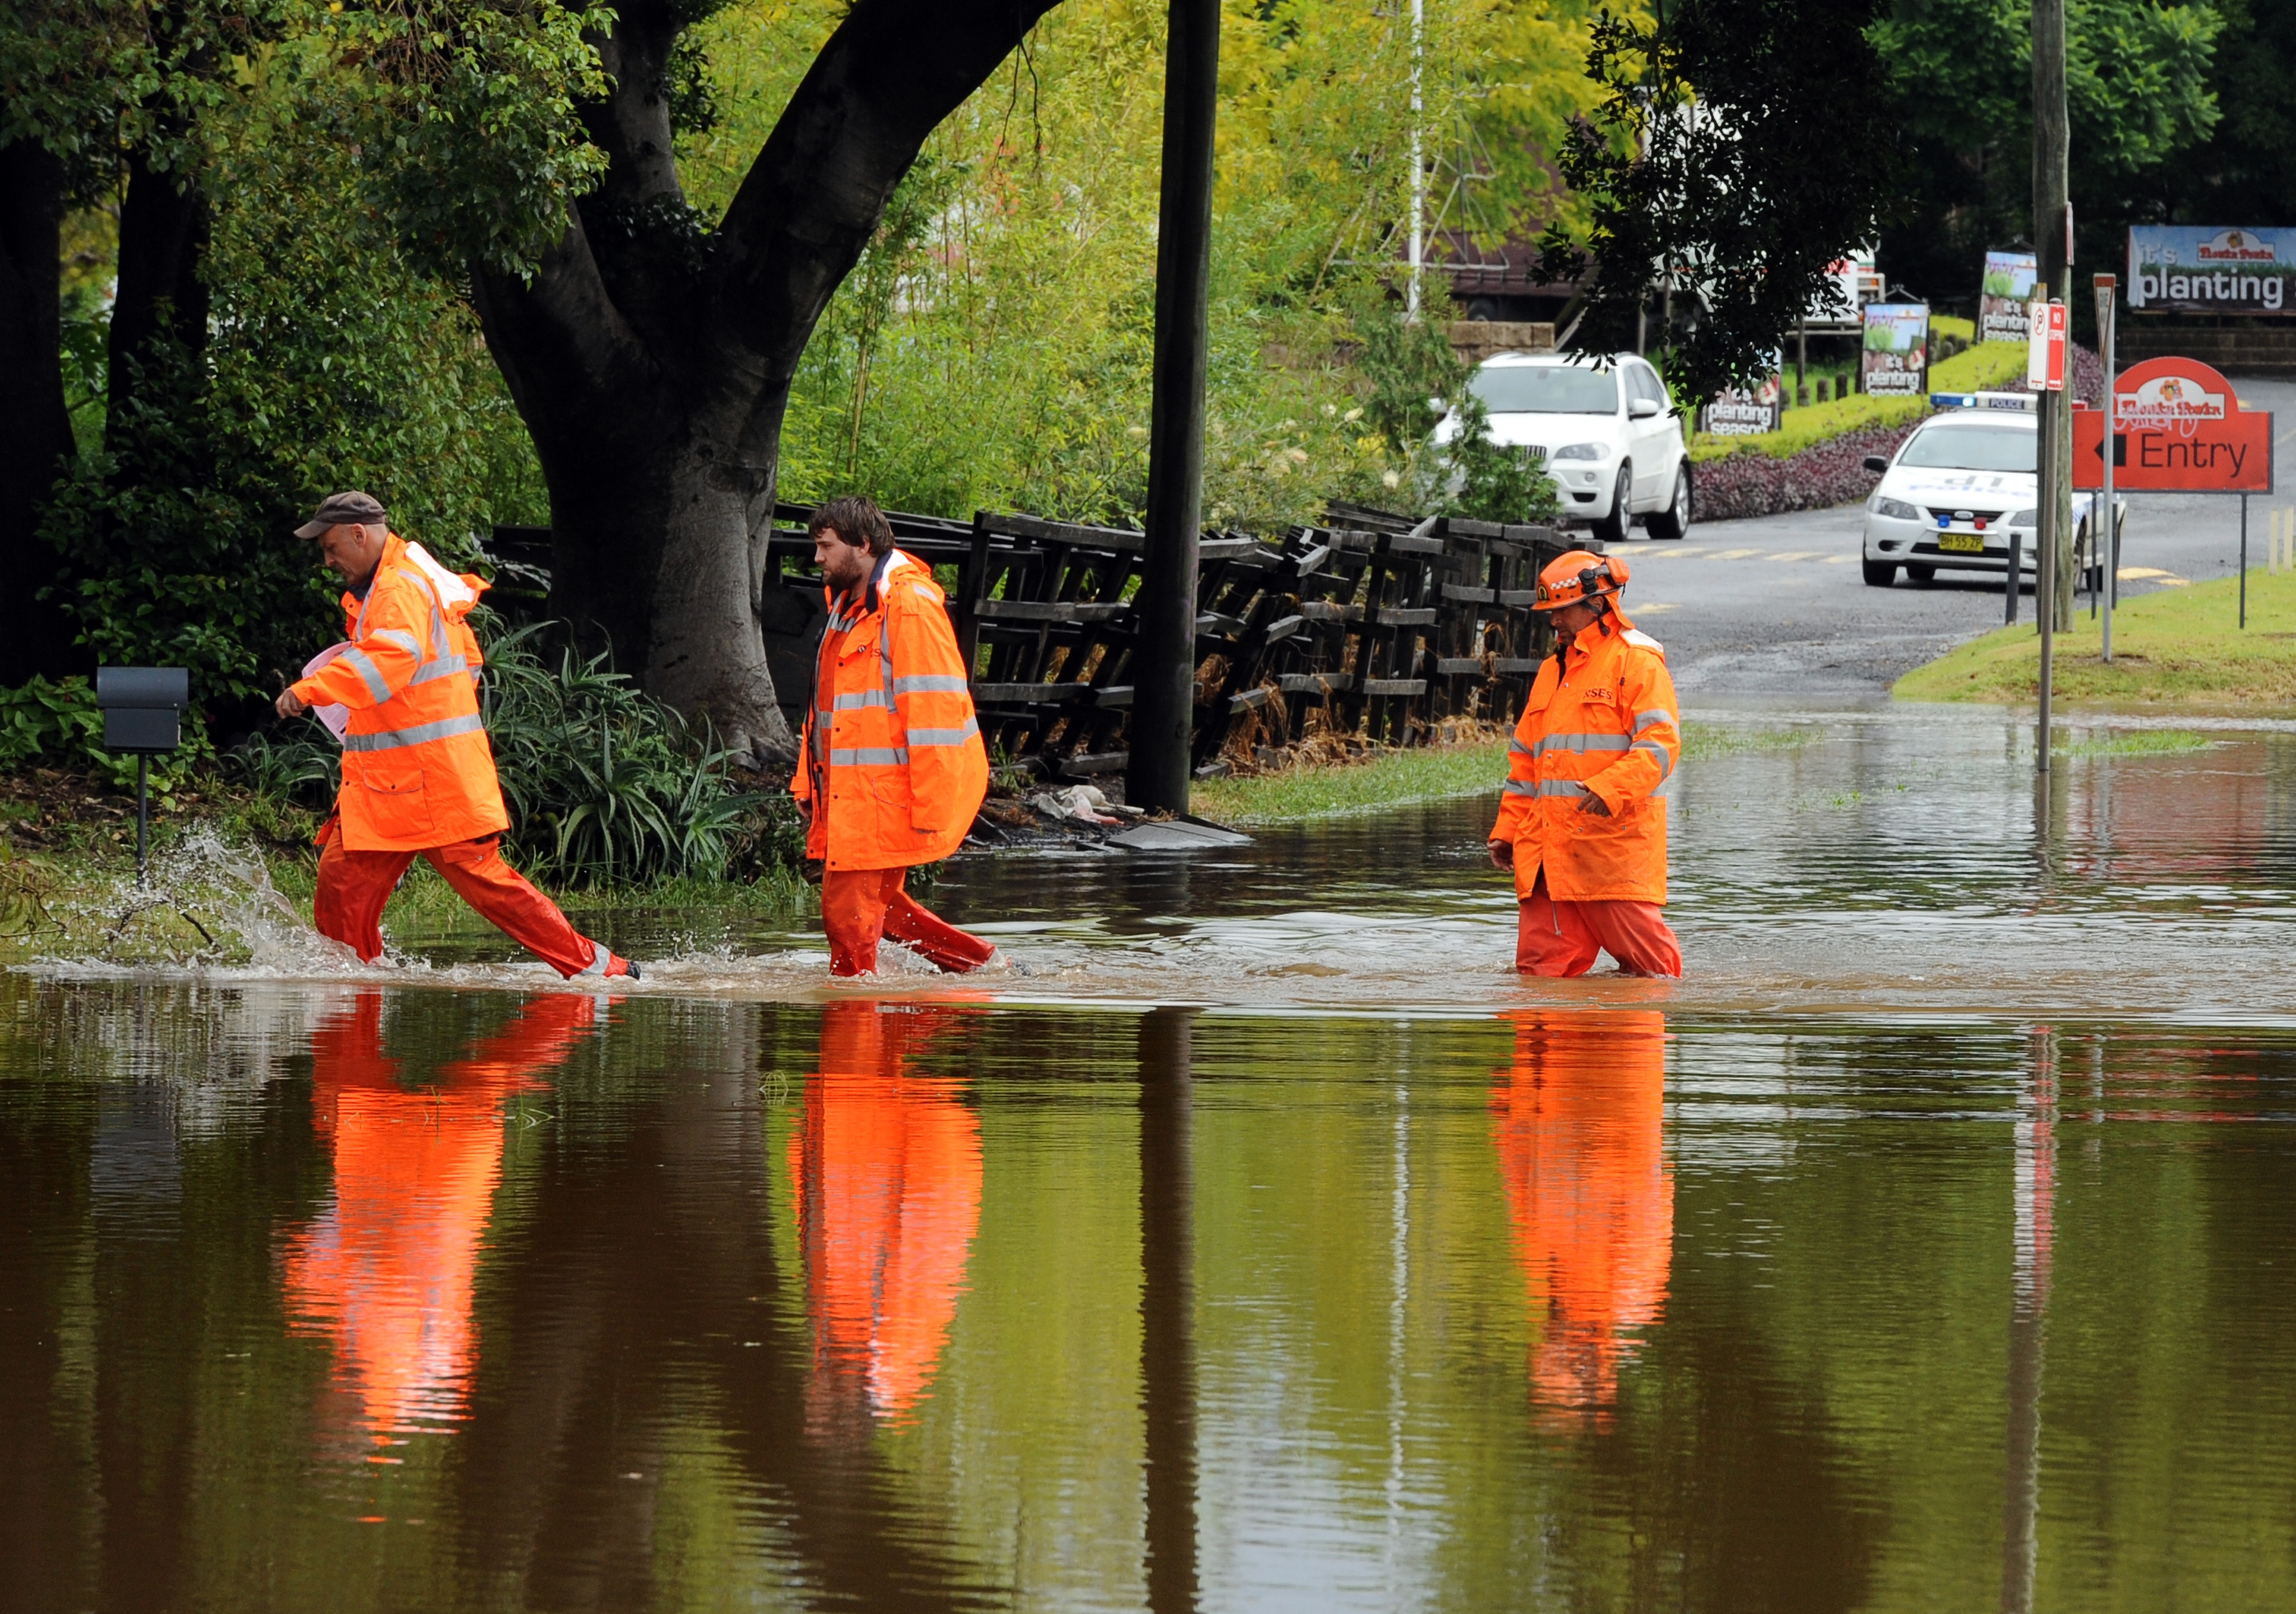 Emergency personnel check homes for inundation after heavy rains caused flash flooding across Sydney on March 8, 2012. Large tracts of New South Wales state are under water, with Sydney feeling the force of a La Nina weather system as an estimated 120 millimetres of rain fell on the city -- the highest daily total since 2007.